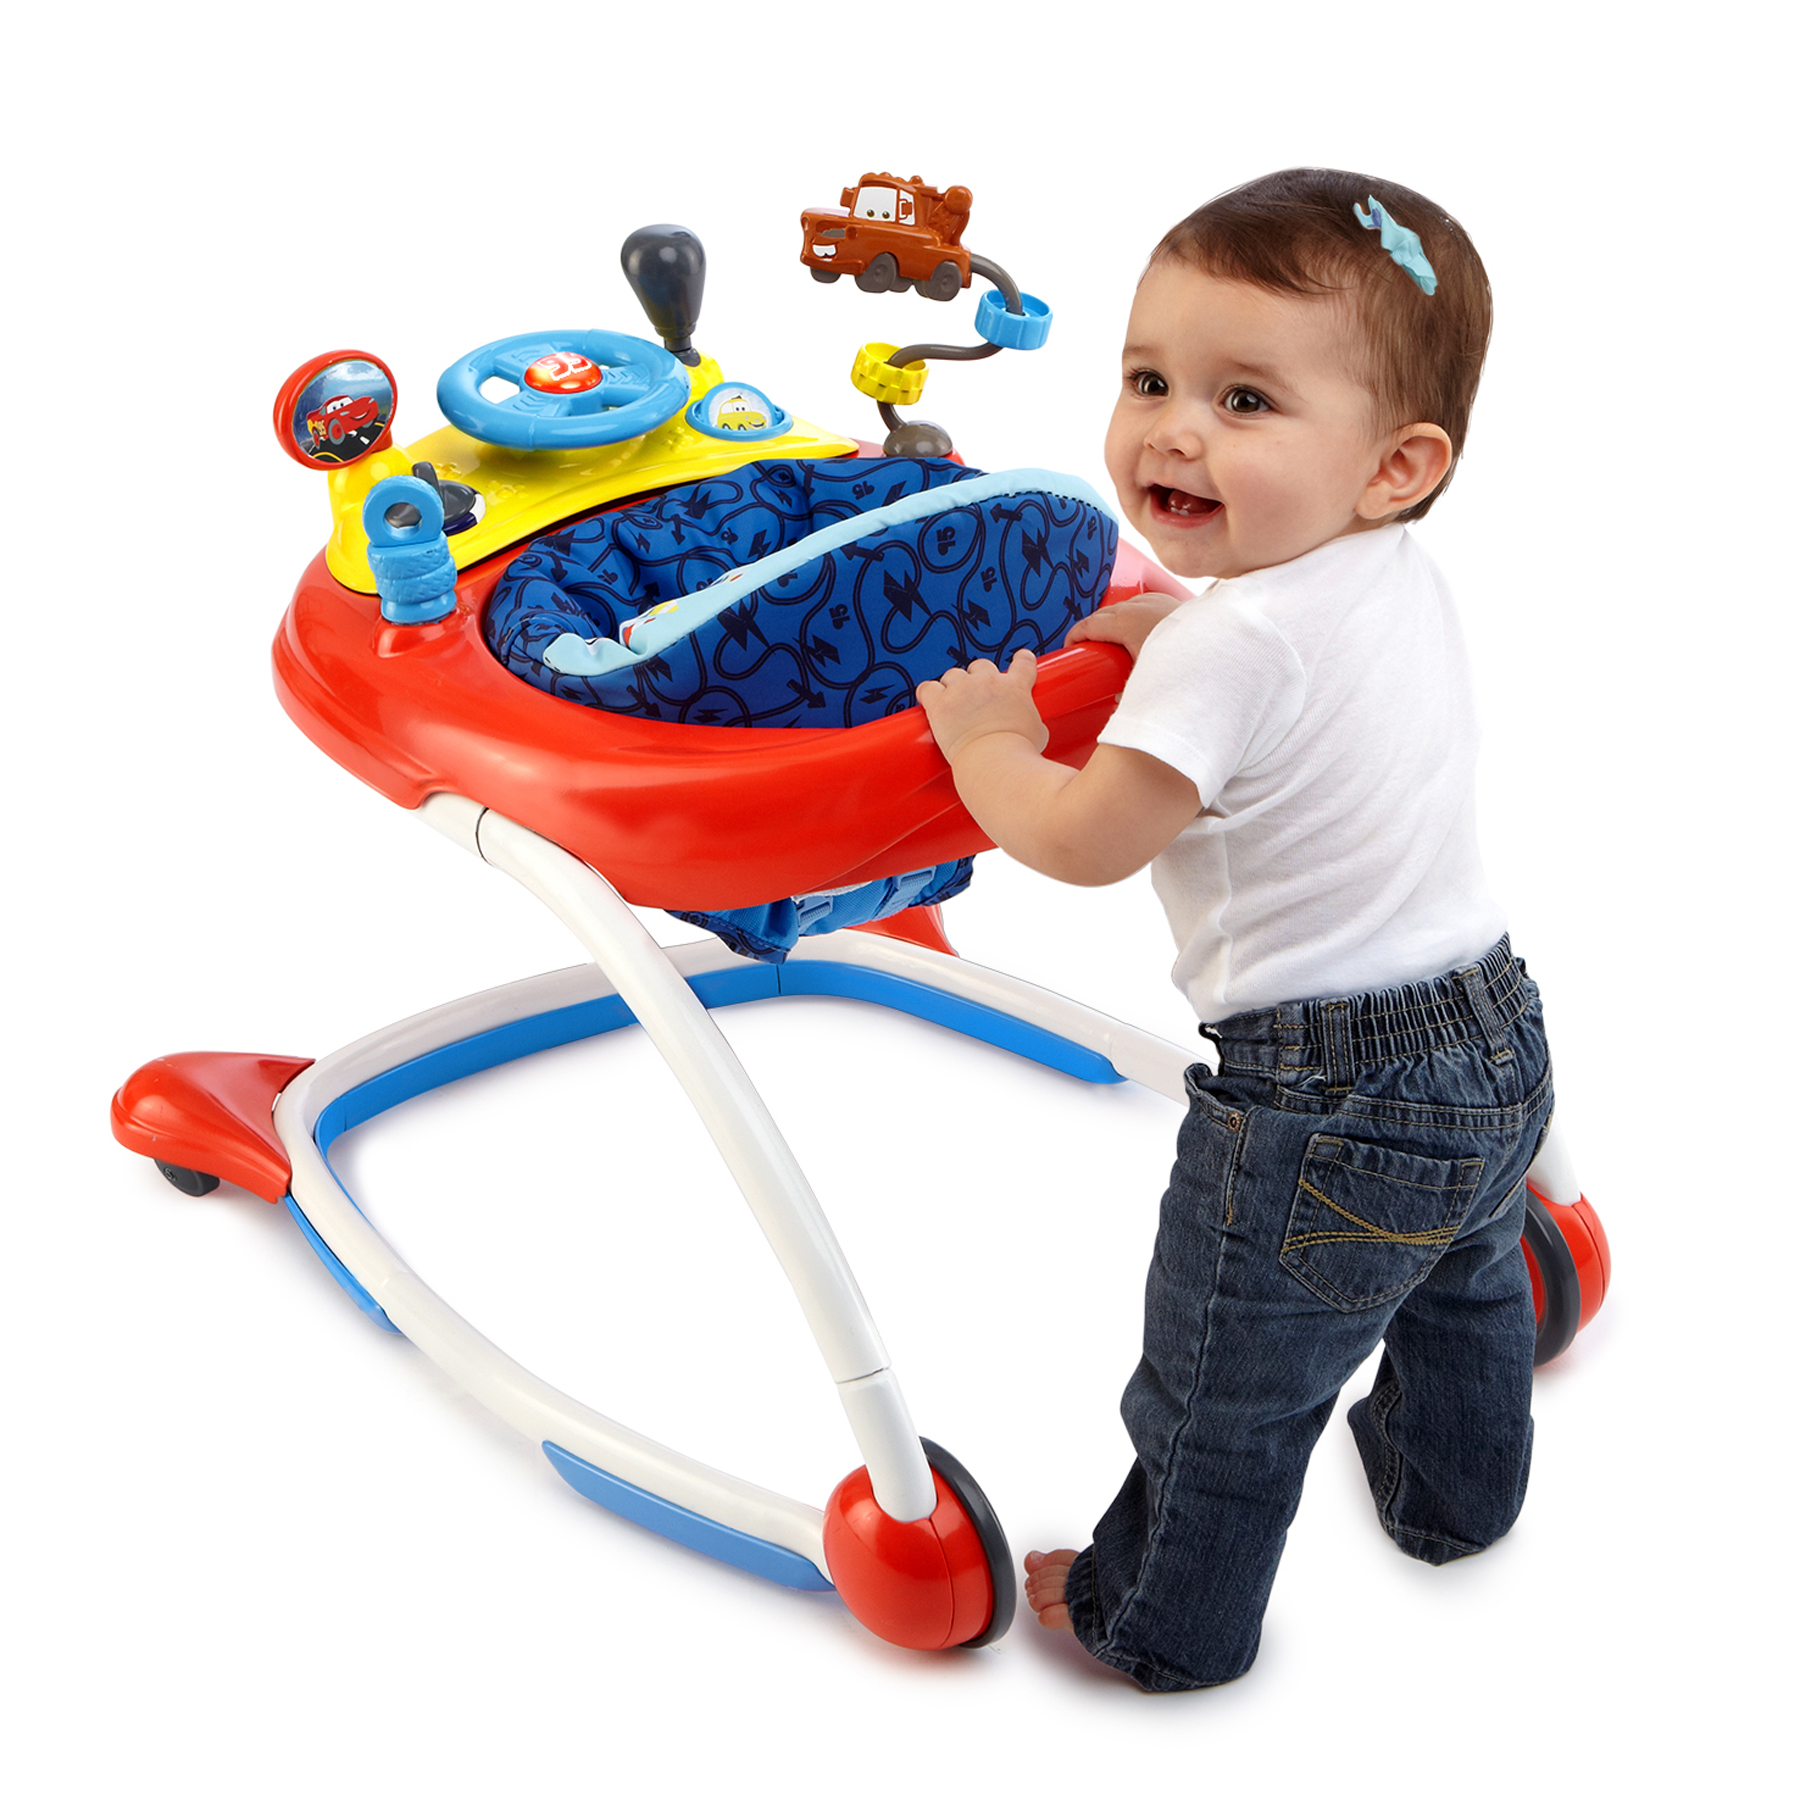 bcce4ea98 Best Baby Walkers Reviews  Top 8 for 2018